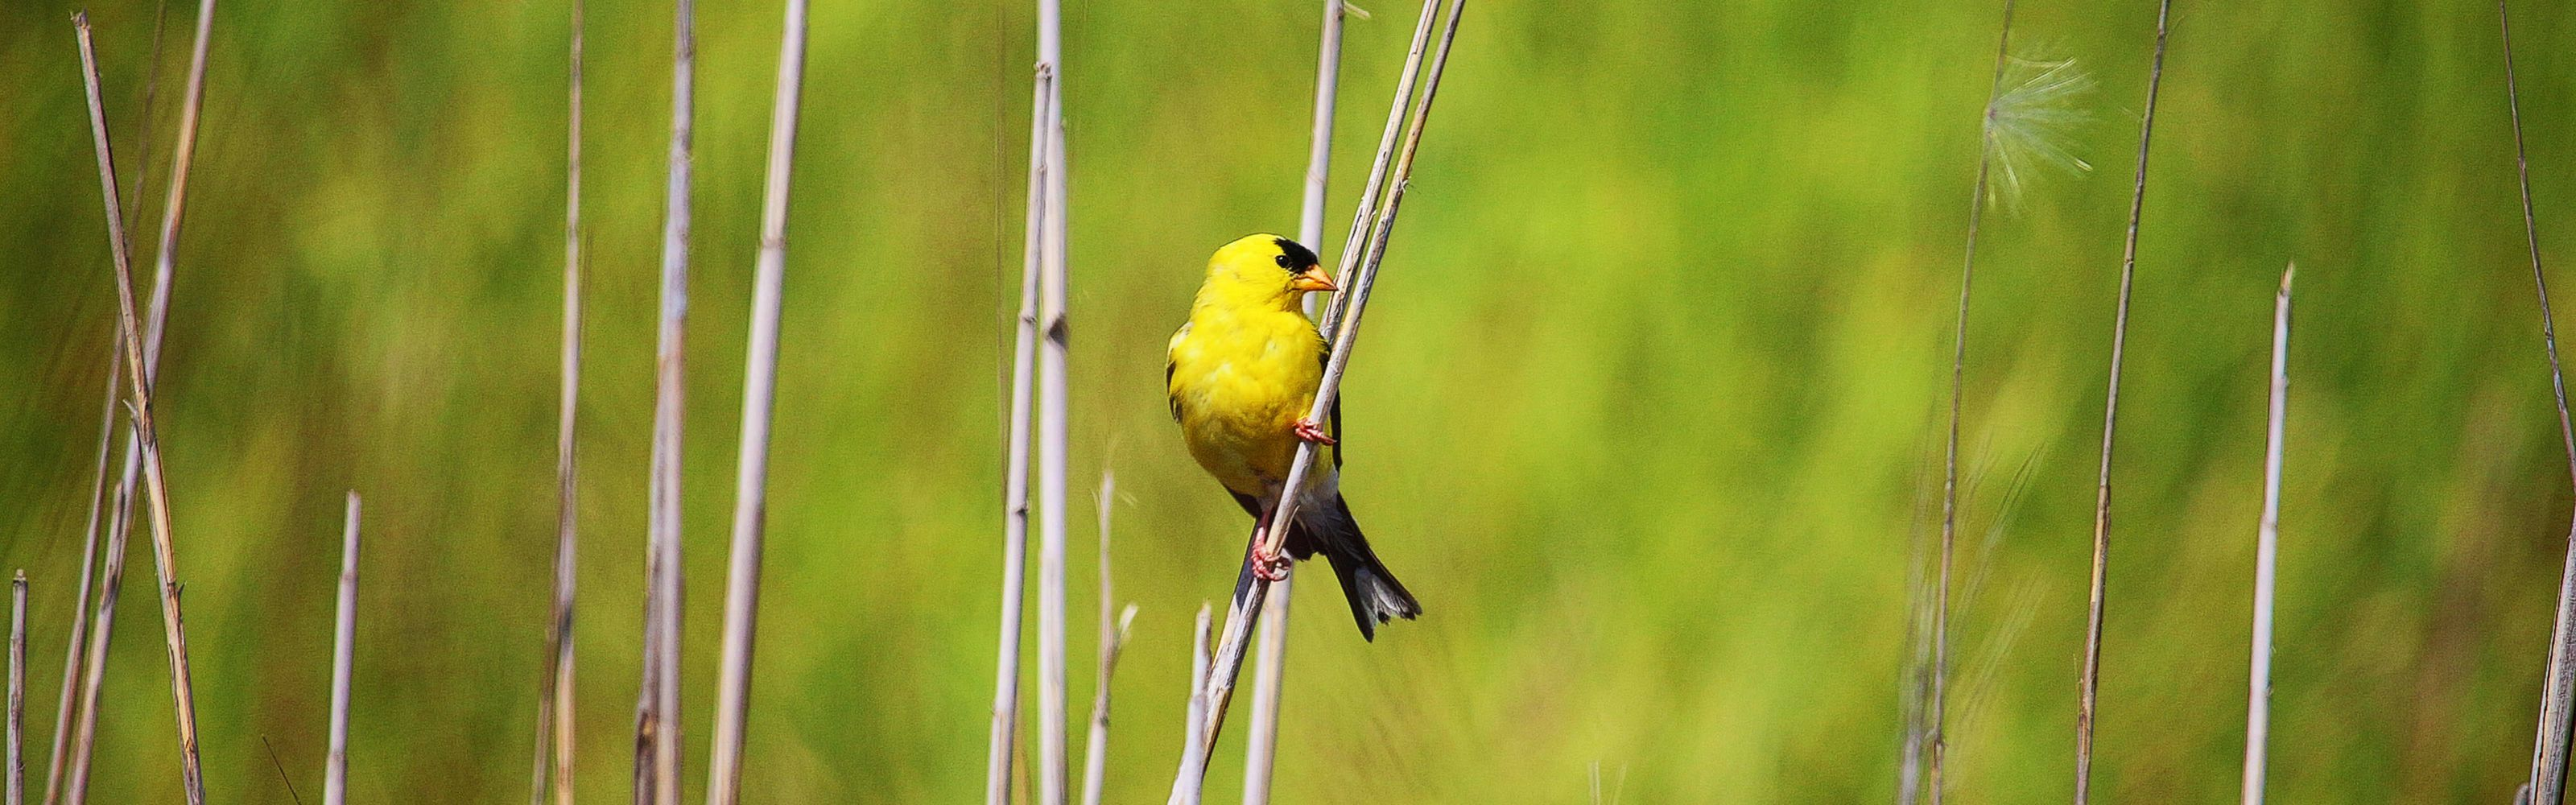 A yellow bird with a black face perches on a slender stalk of dry marsh grass.